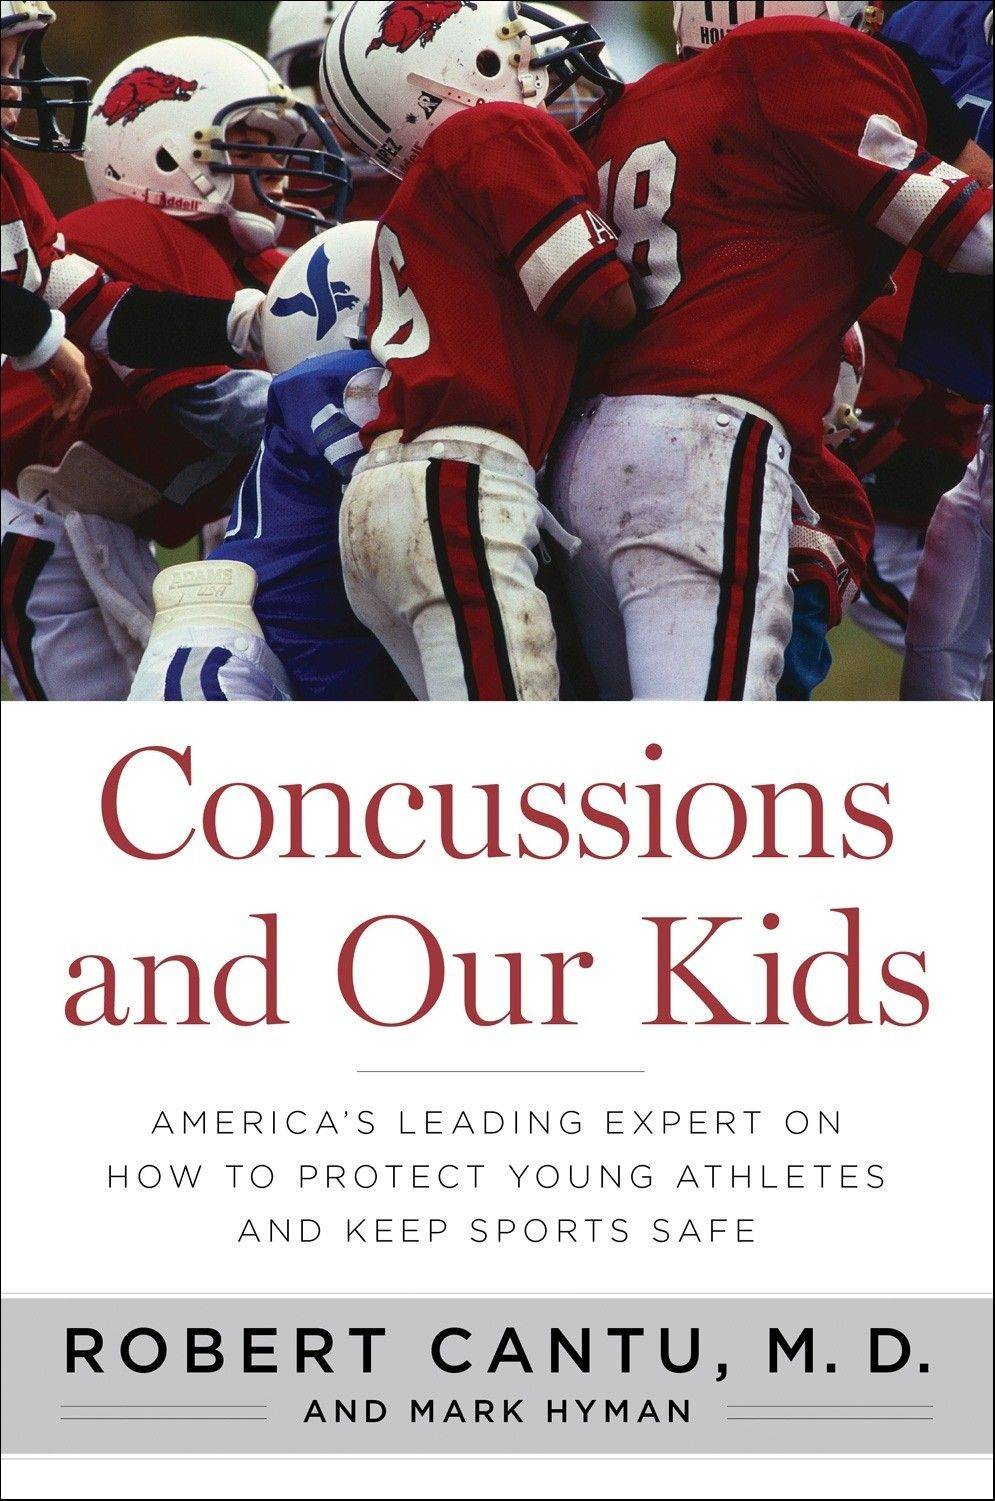 """Concussions and Our Kids"" by Robert Cantu, M.D., and Mark Hyman (Houghton Mifflin Harcourt, 2012), $24, 181 pages."